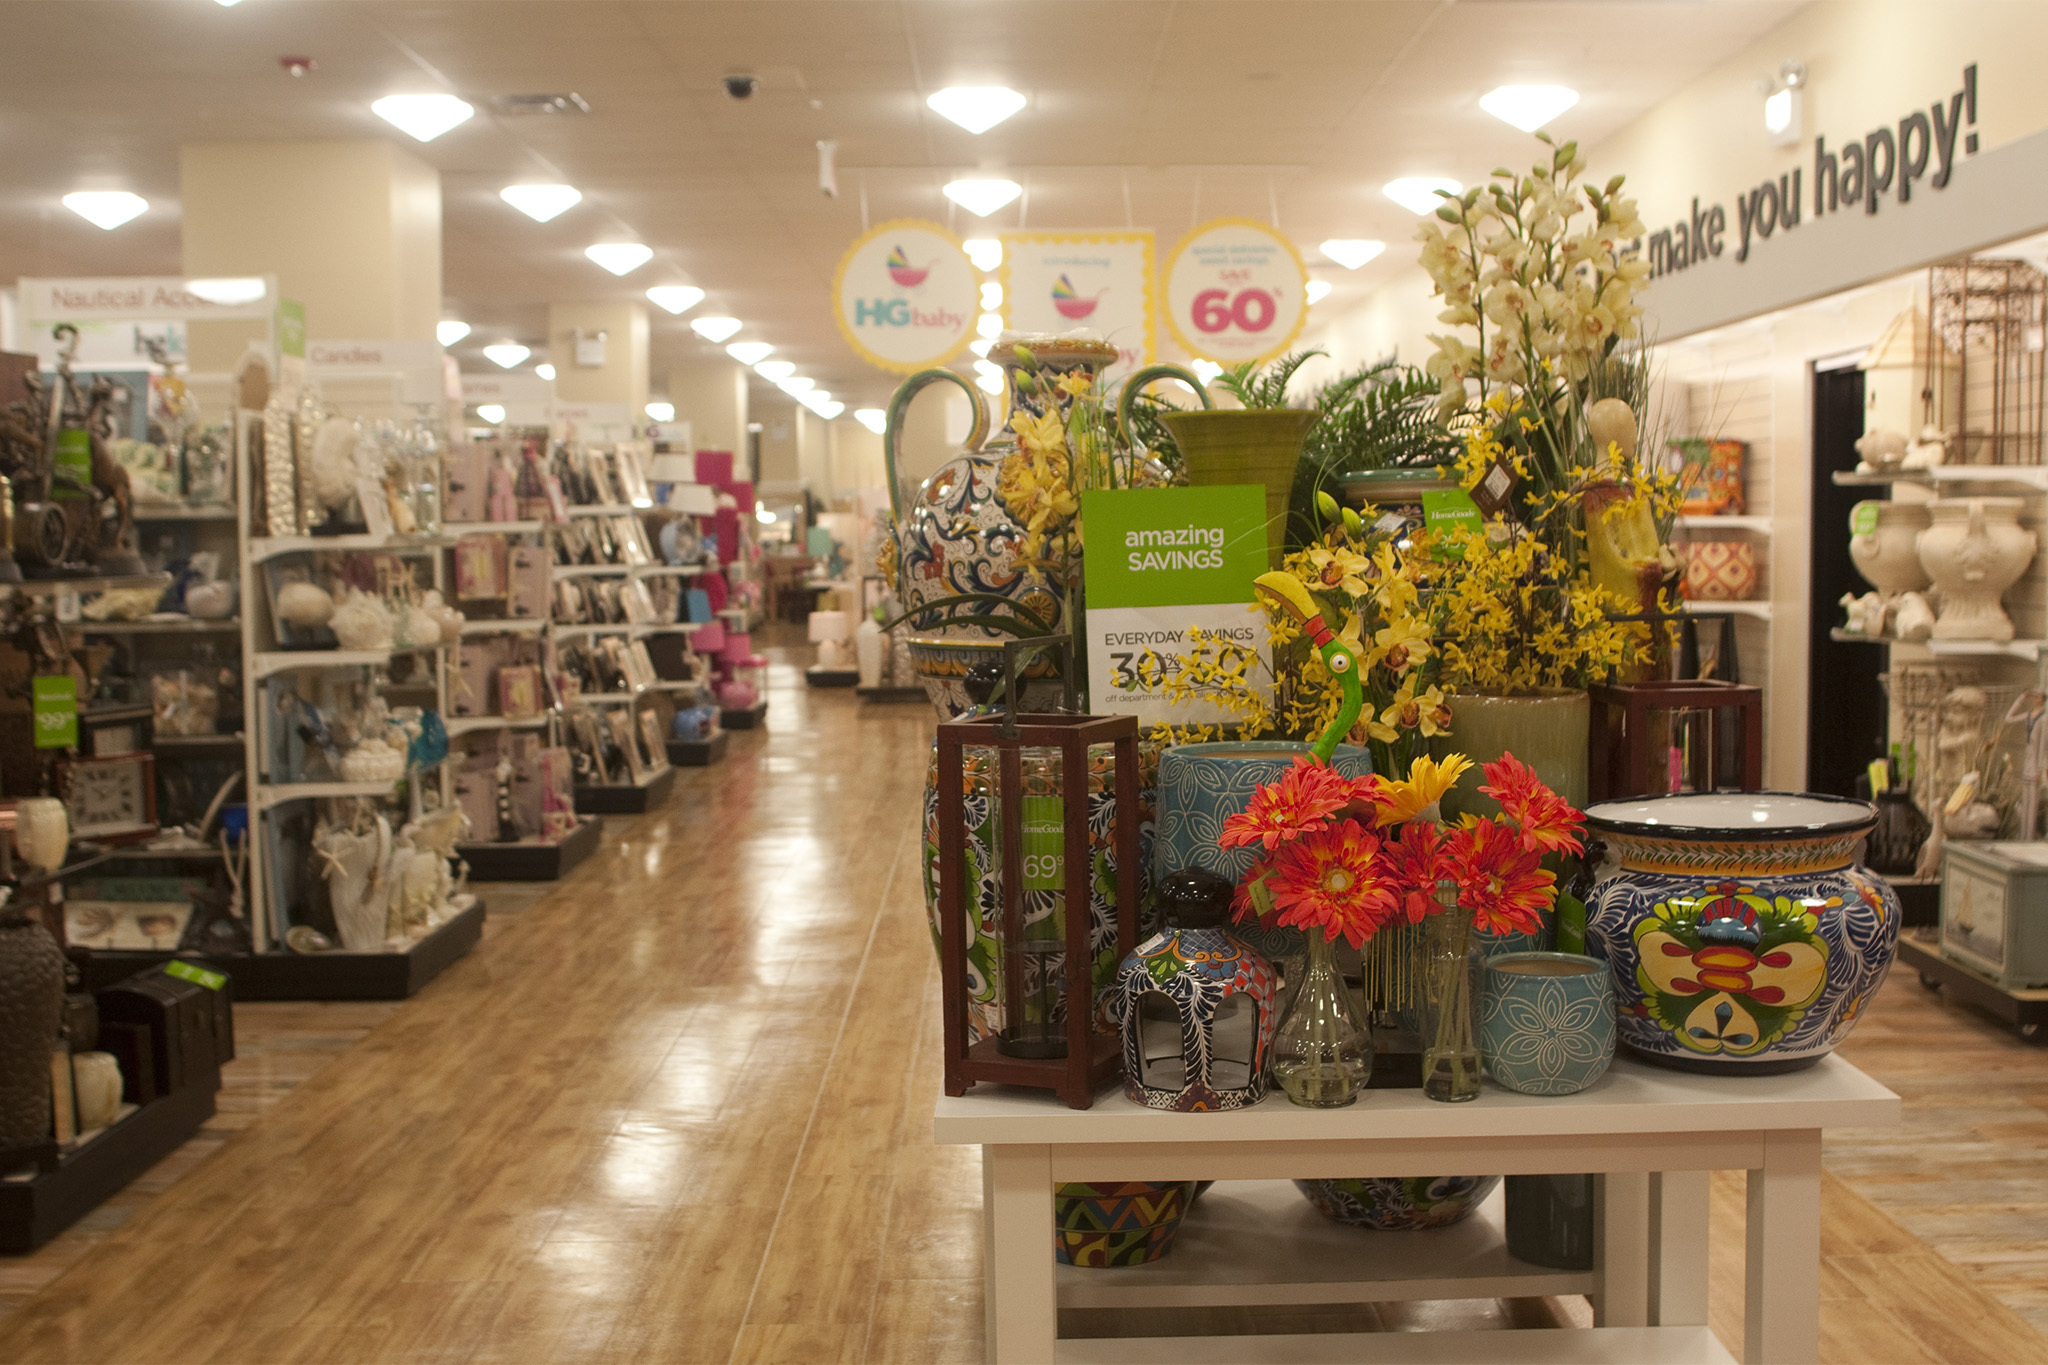 Homegoods shopping in upper west side new york for Home decorative accessories shopping